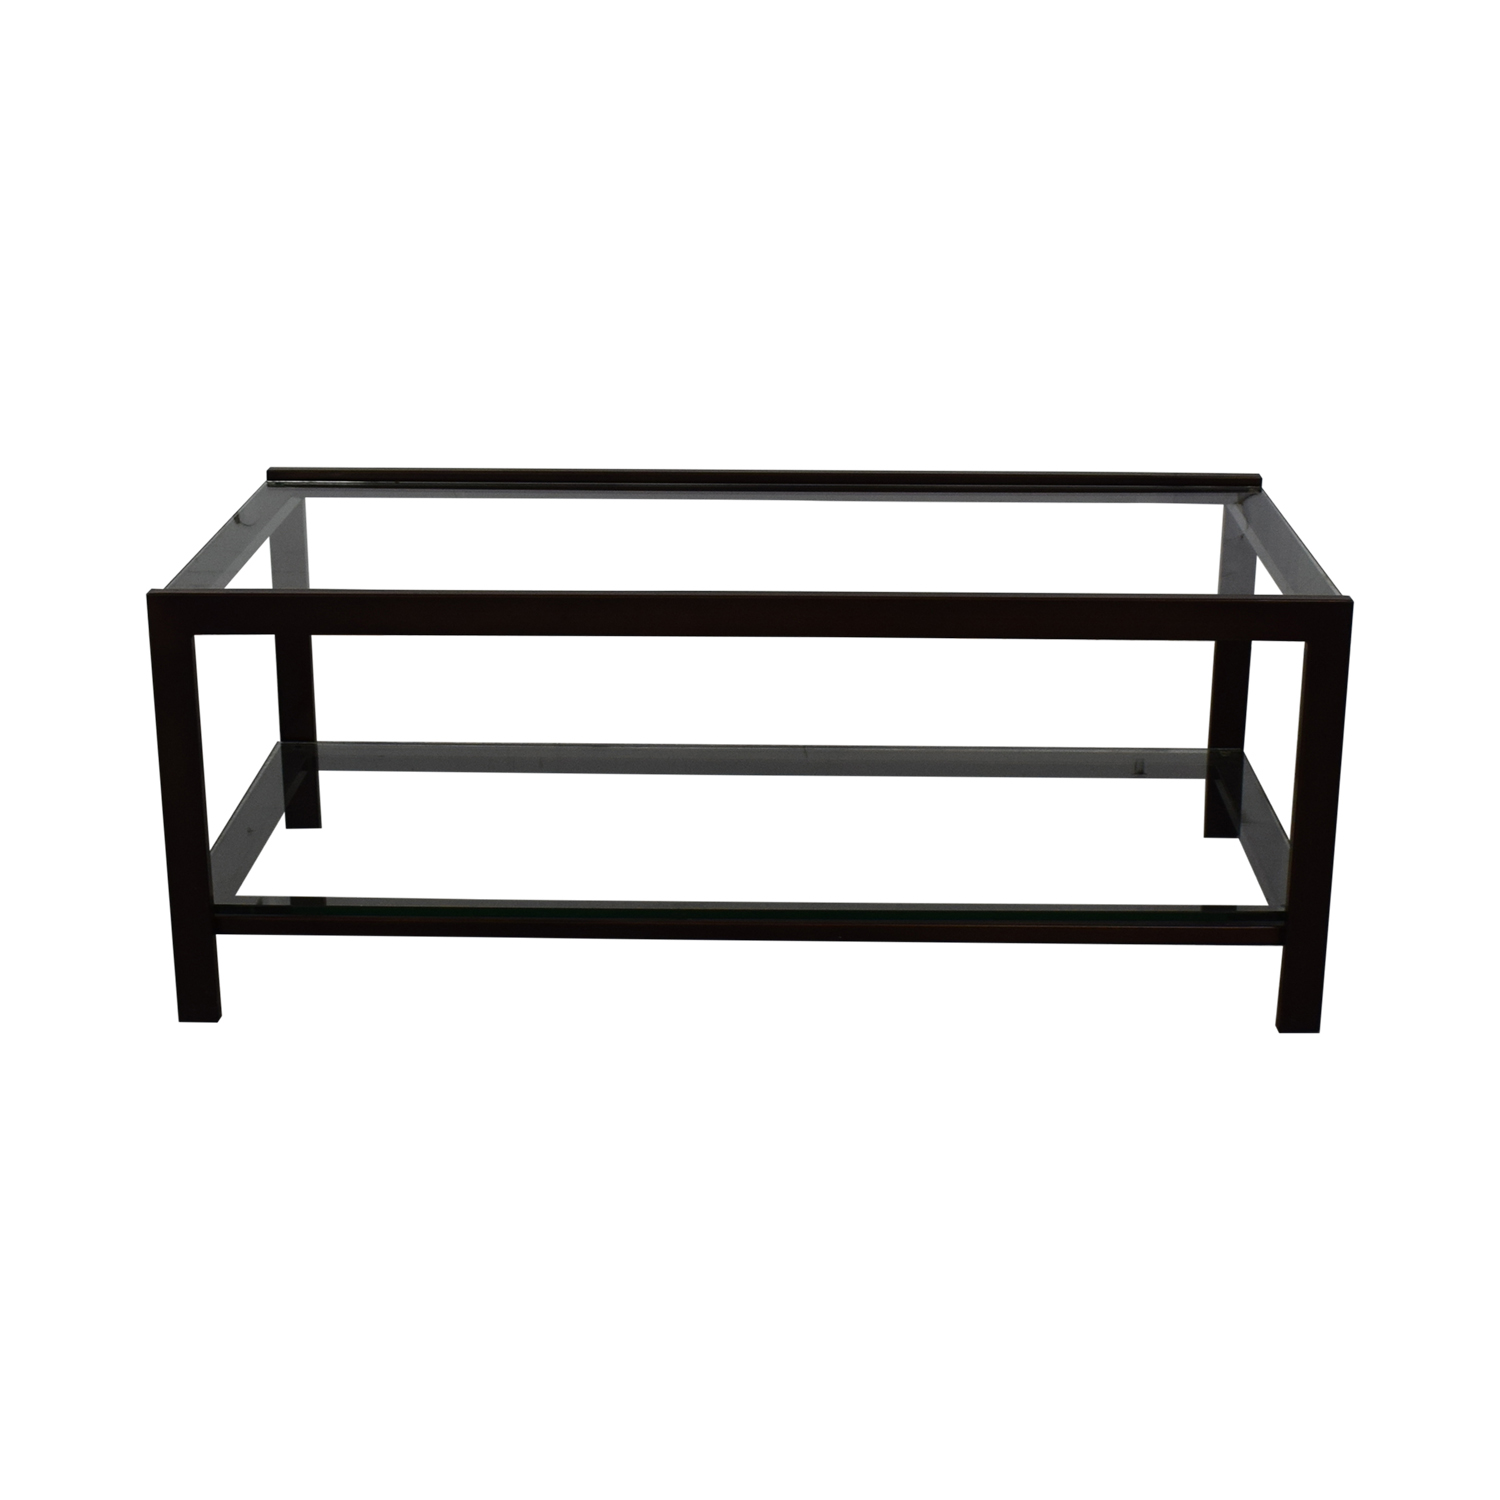 Crate & Barrel Crate & Barrel Glass Coffee Table Coffee Tables